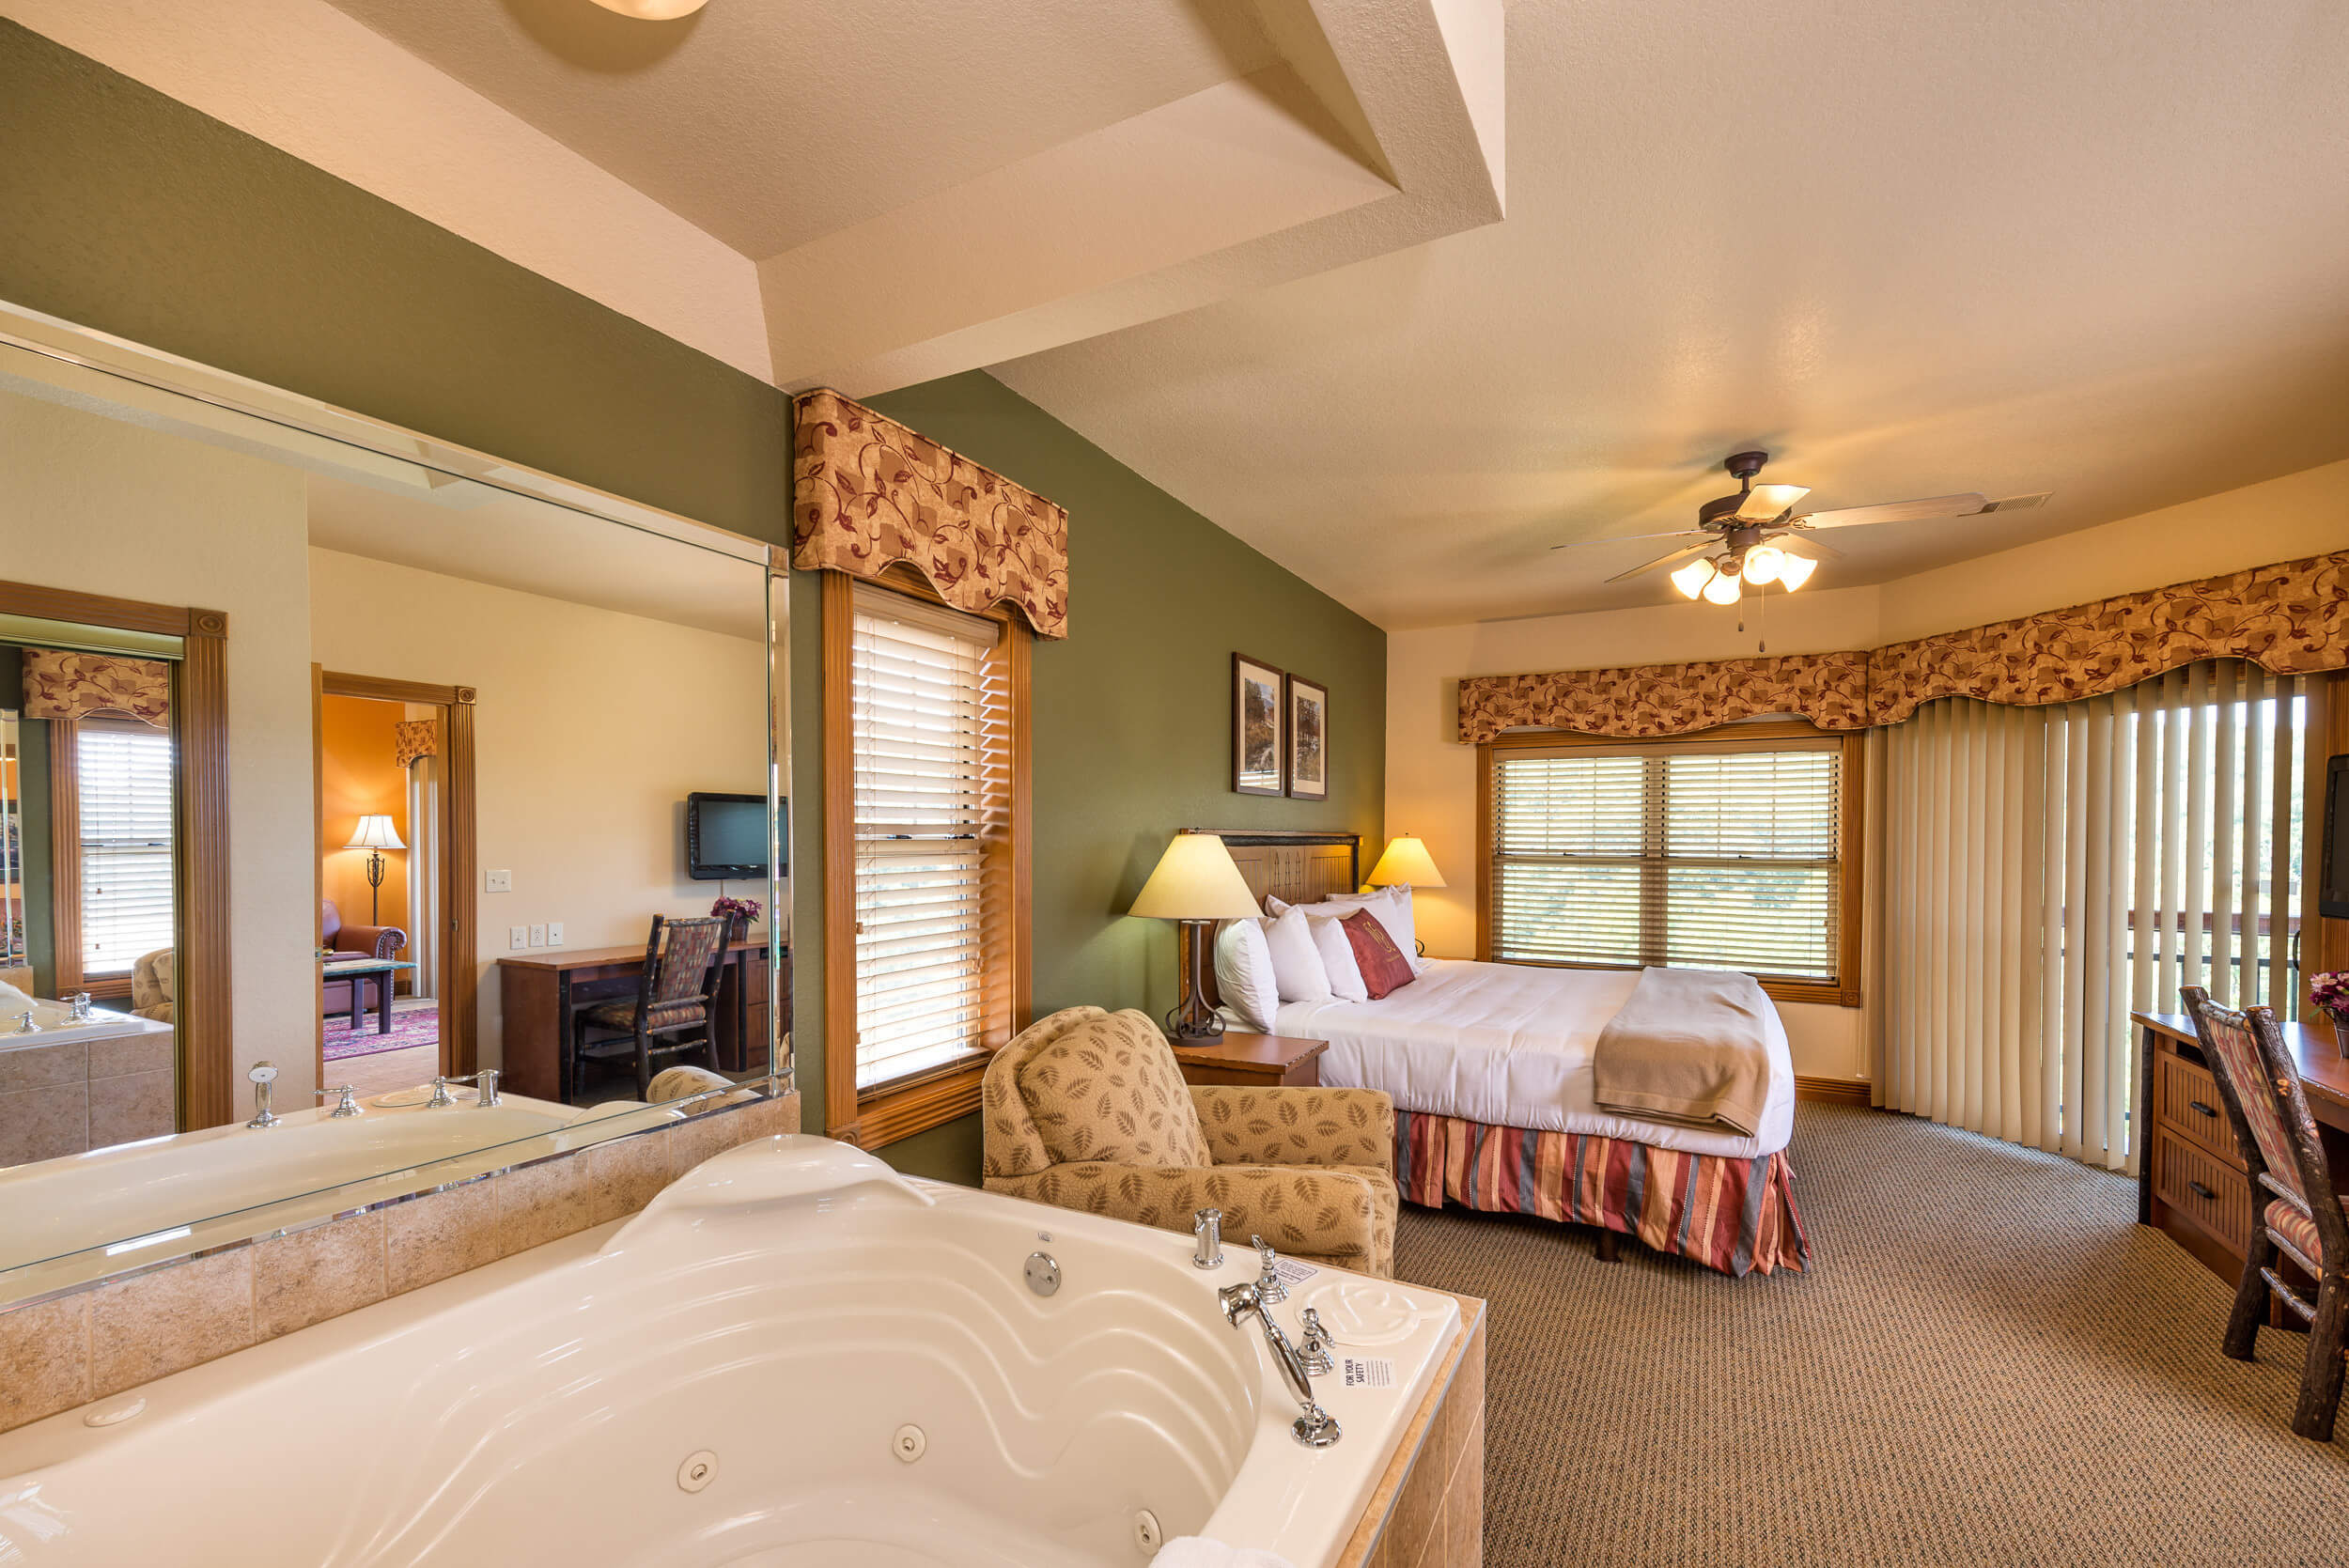 Hot-tub in One Bedroom Grand Villa in our Branson Villas | Westgate Branson Woods Resort | Westgate Resorts